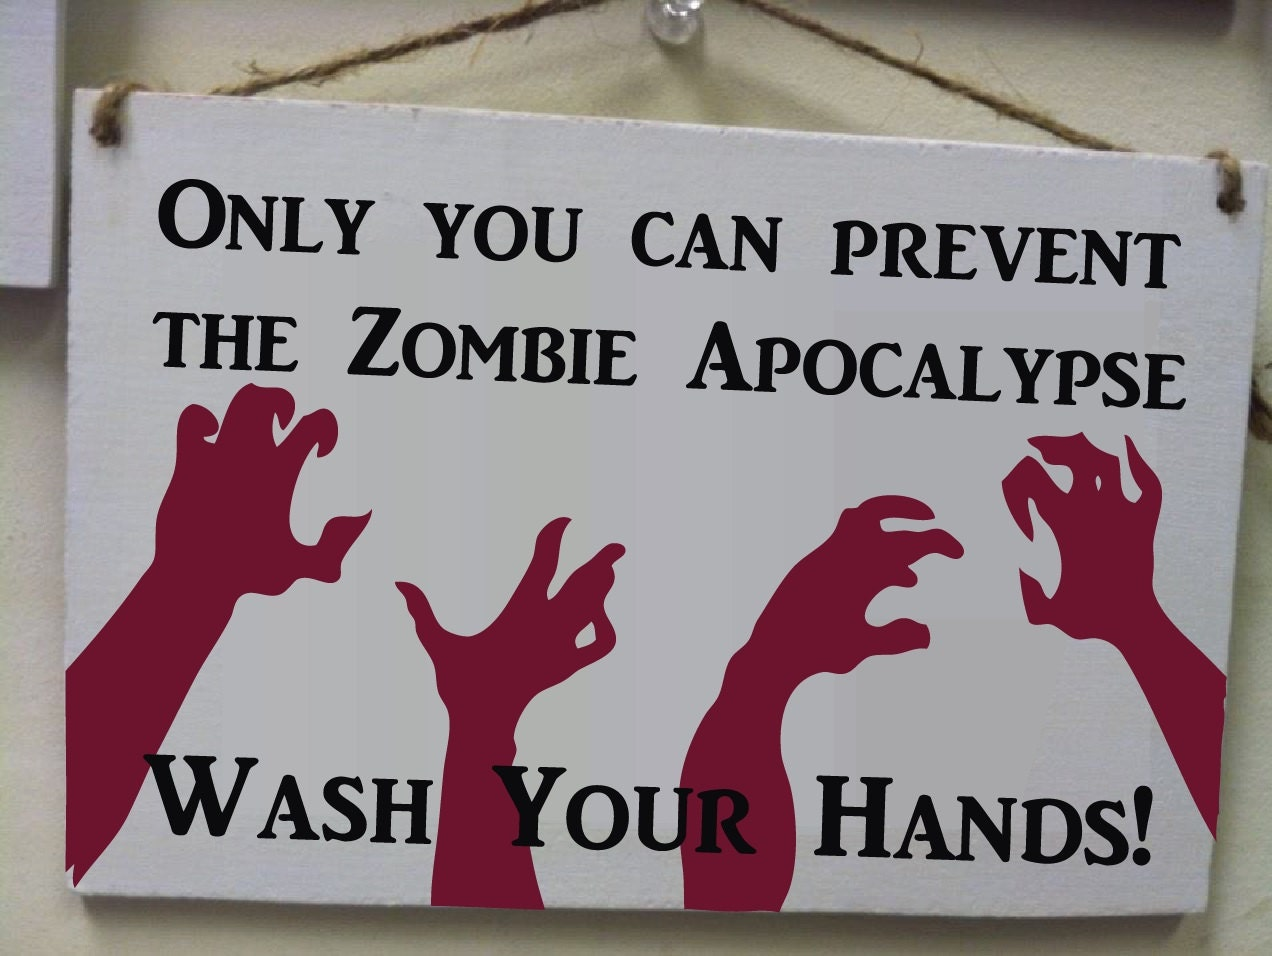 Only You Can Prevent The Zombie Apocalypsewash Your Hands